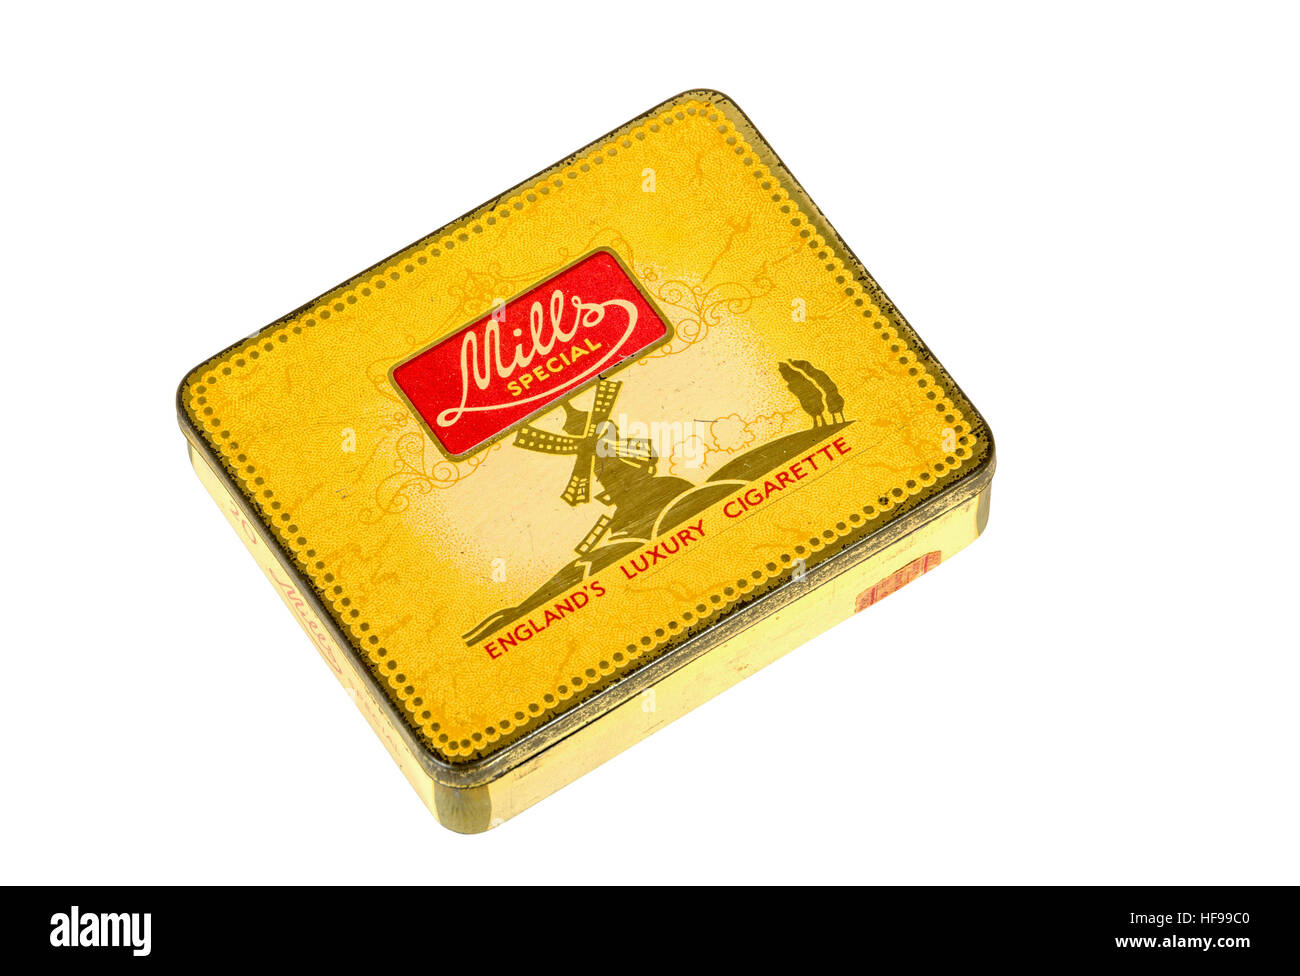 Studio shot vintage yellow metal Mills Special luxury cigarette box on white background - Stock Image